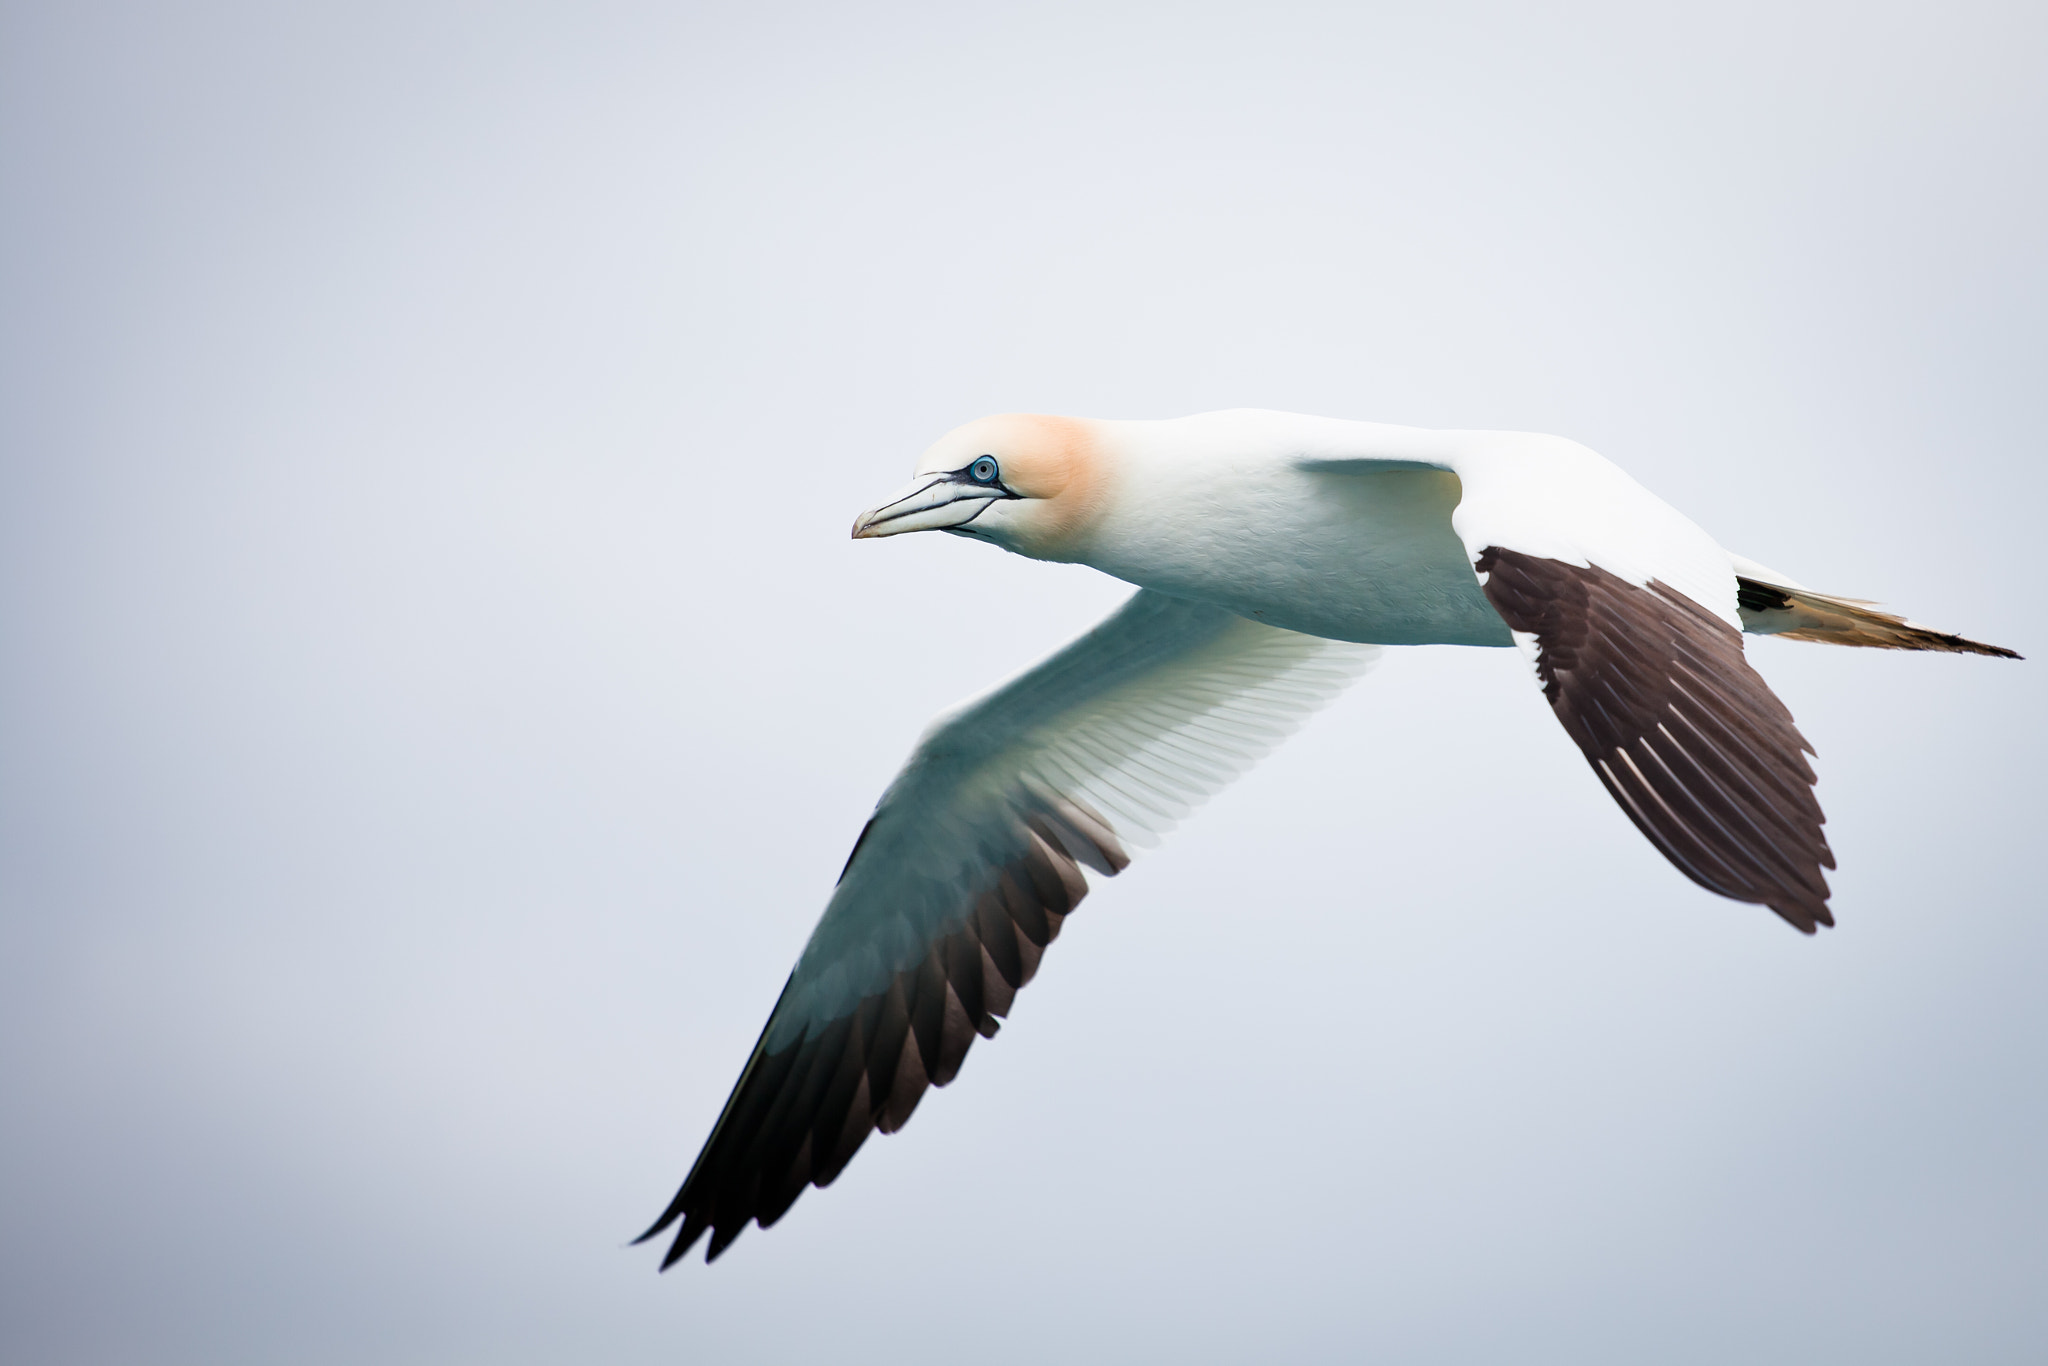 Photograph Gannet in flight by Andrew Johns on 500px